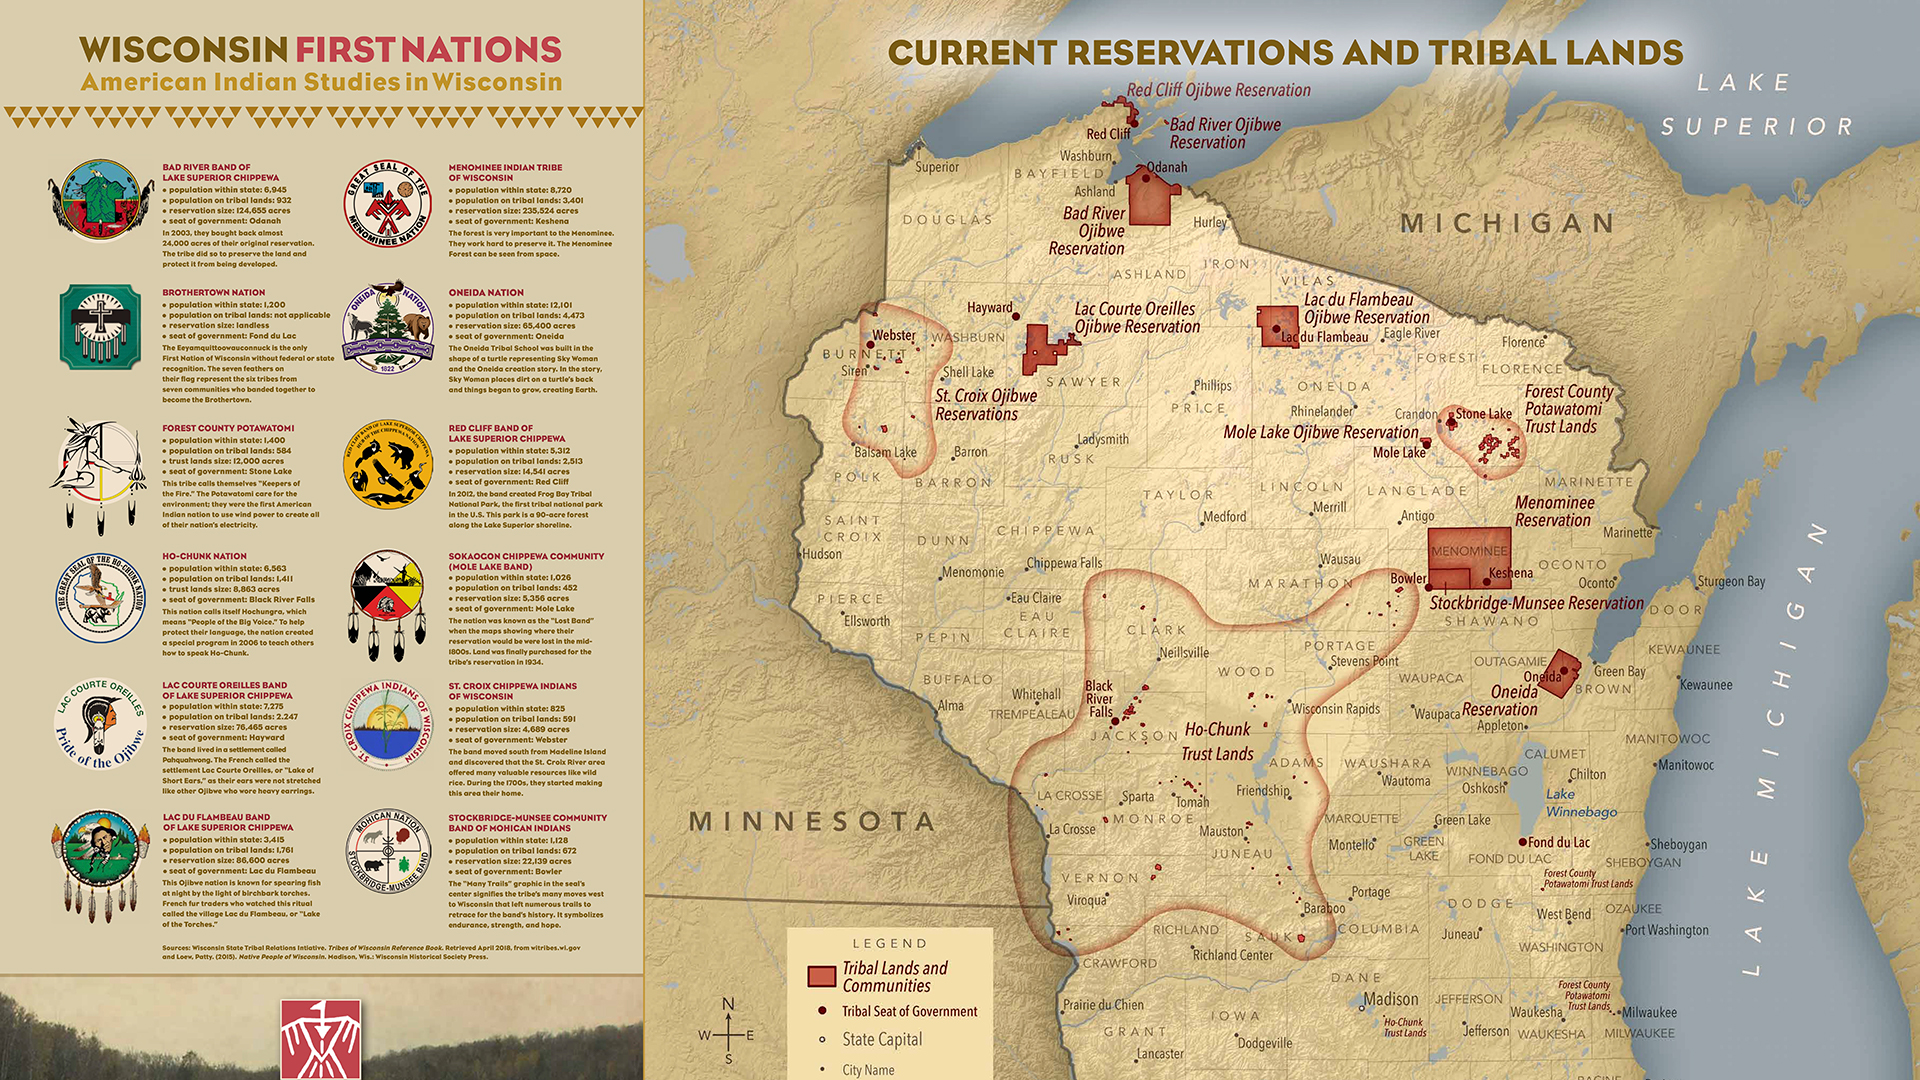 Map of Wisconsin's current reservations and tribal lands